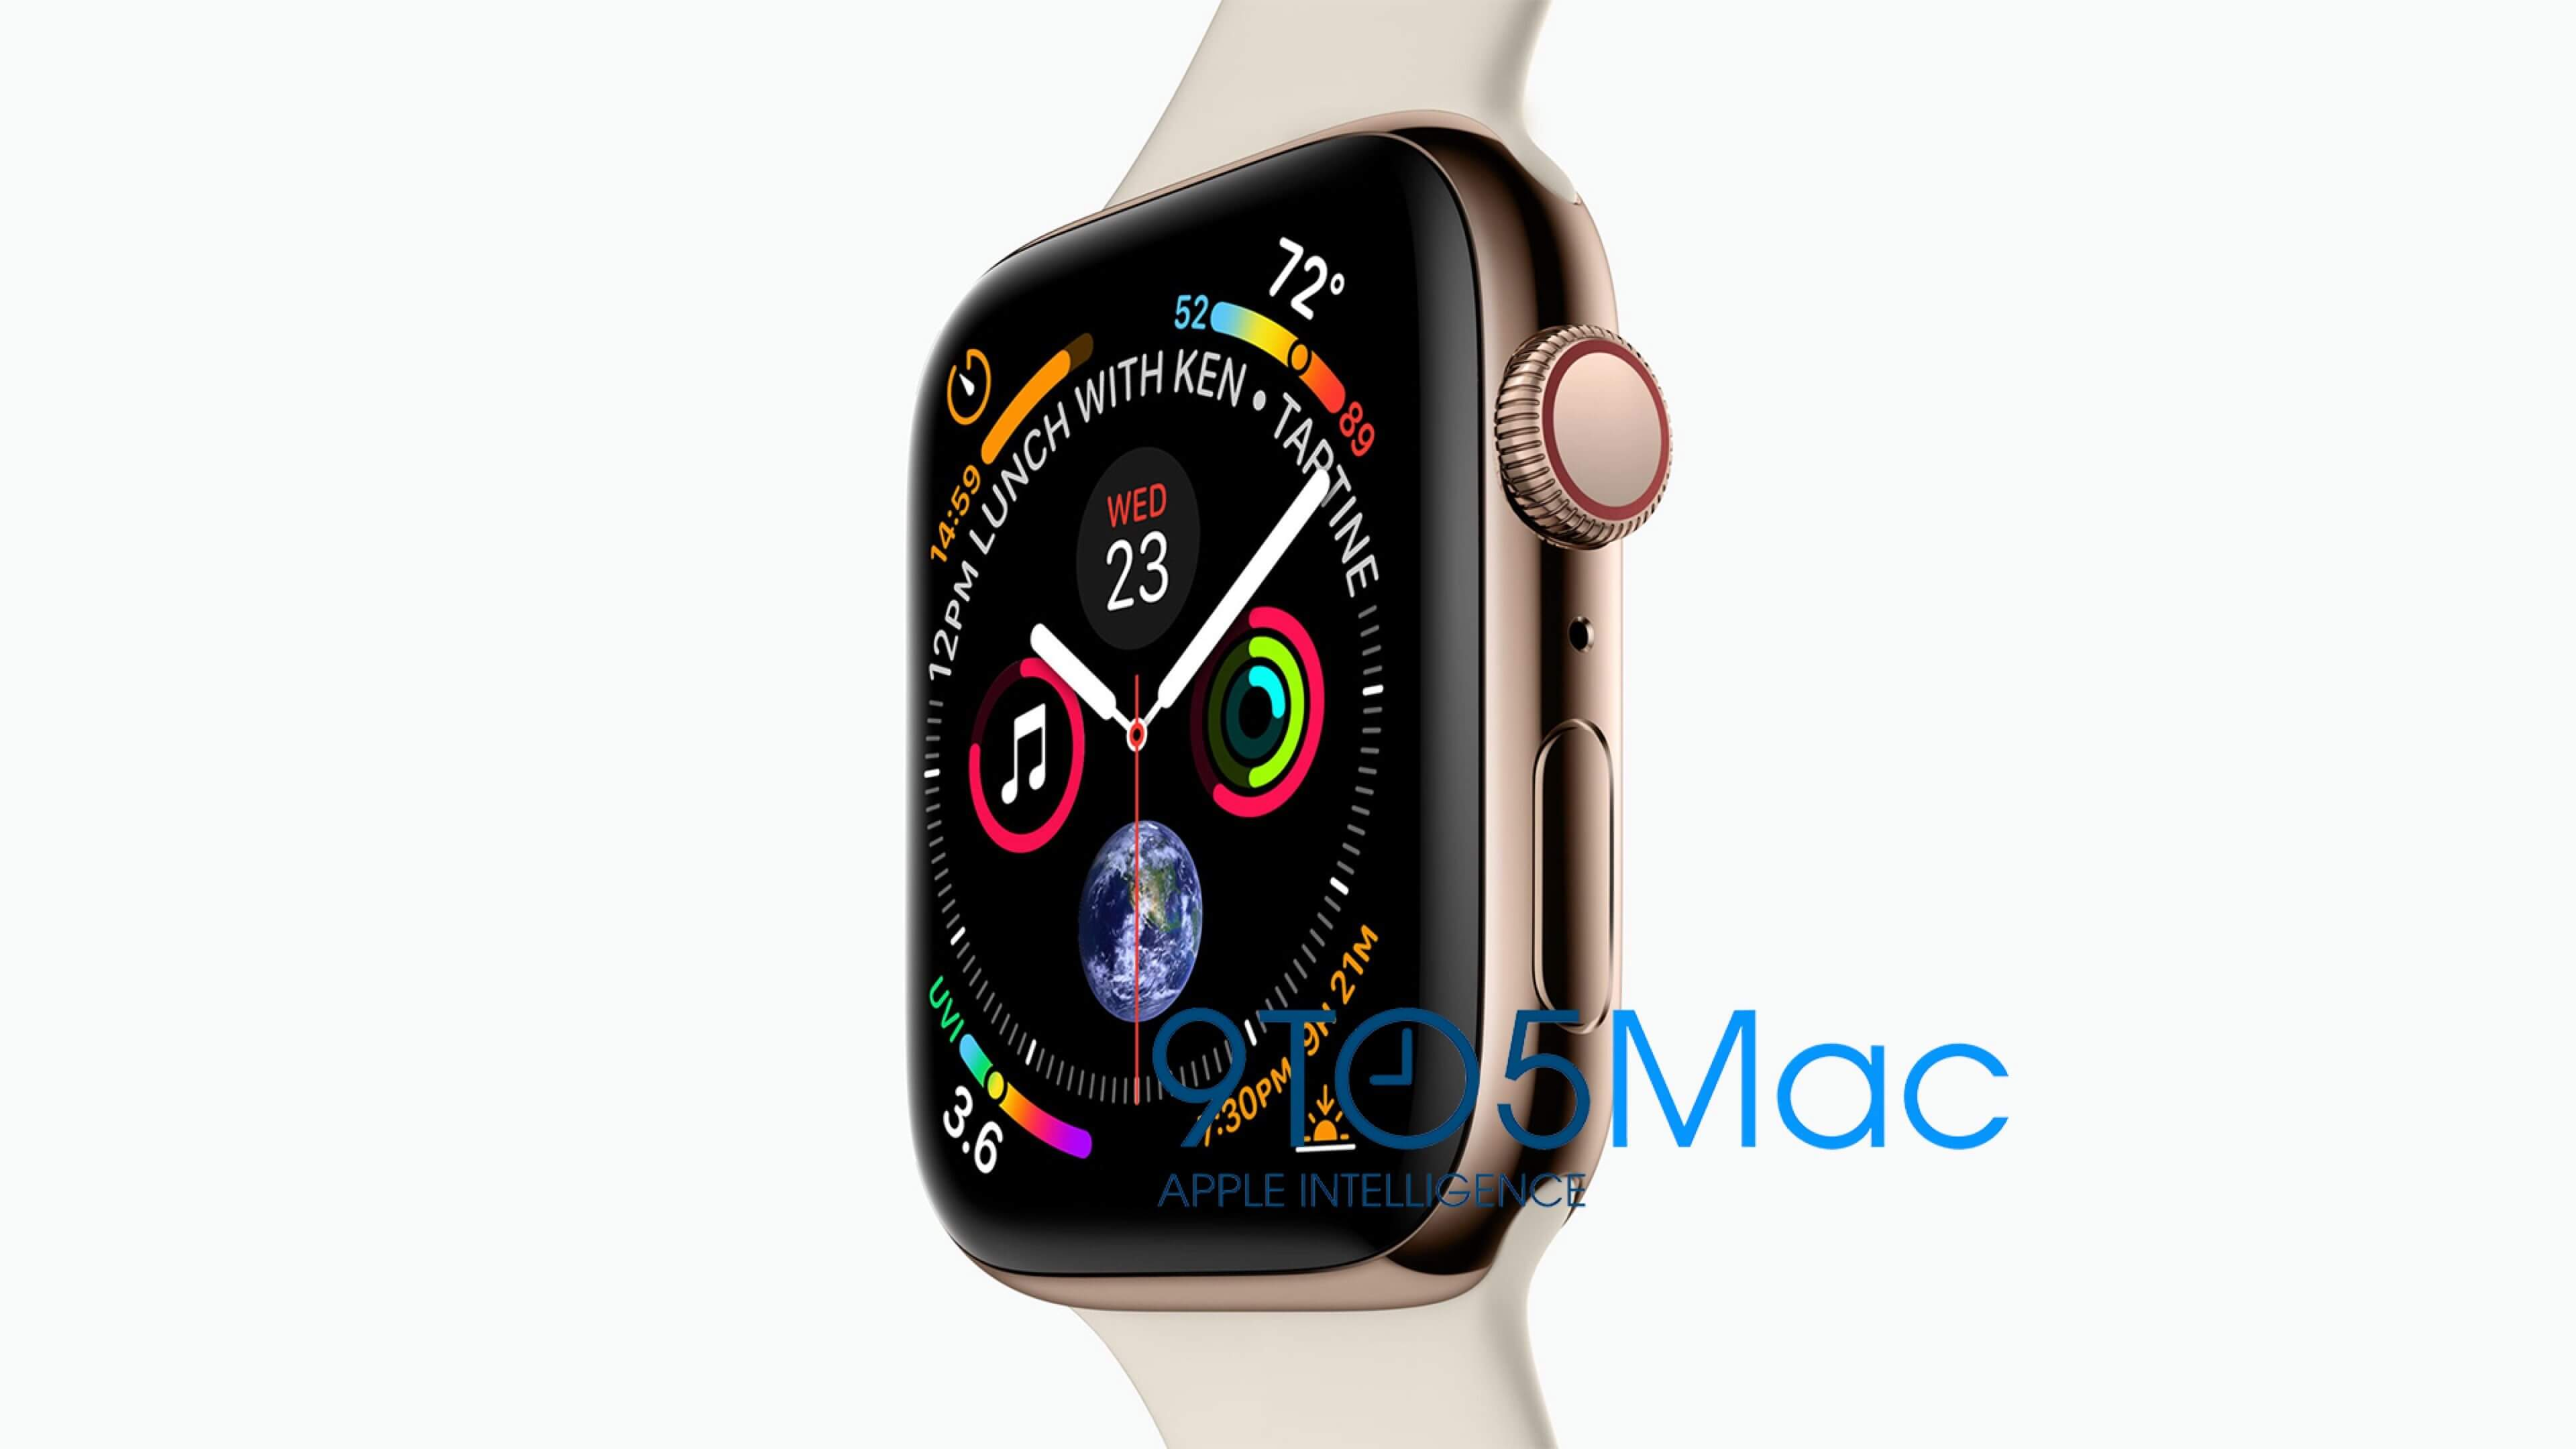 apple watch series 4 9to5mac - Apple Watch Series 4 ganha sua primeira foto oficial; confira